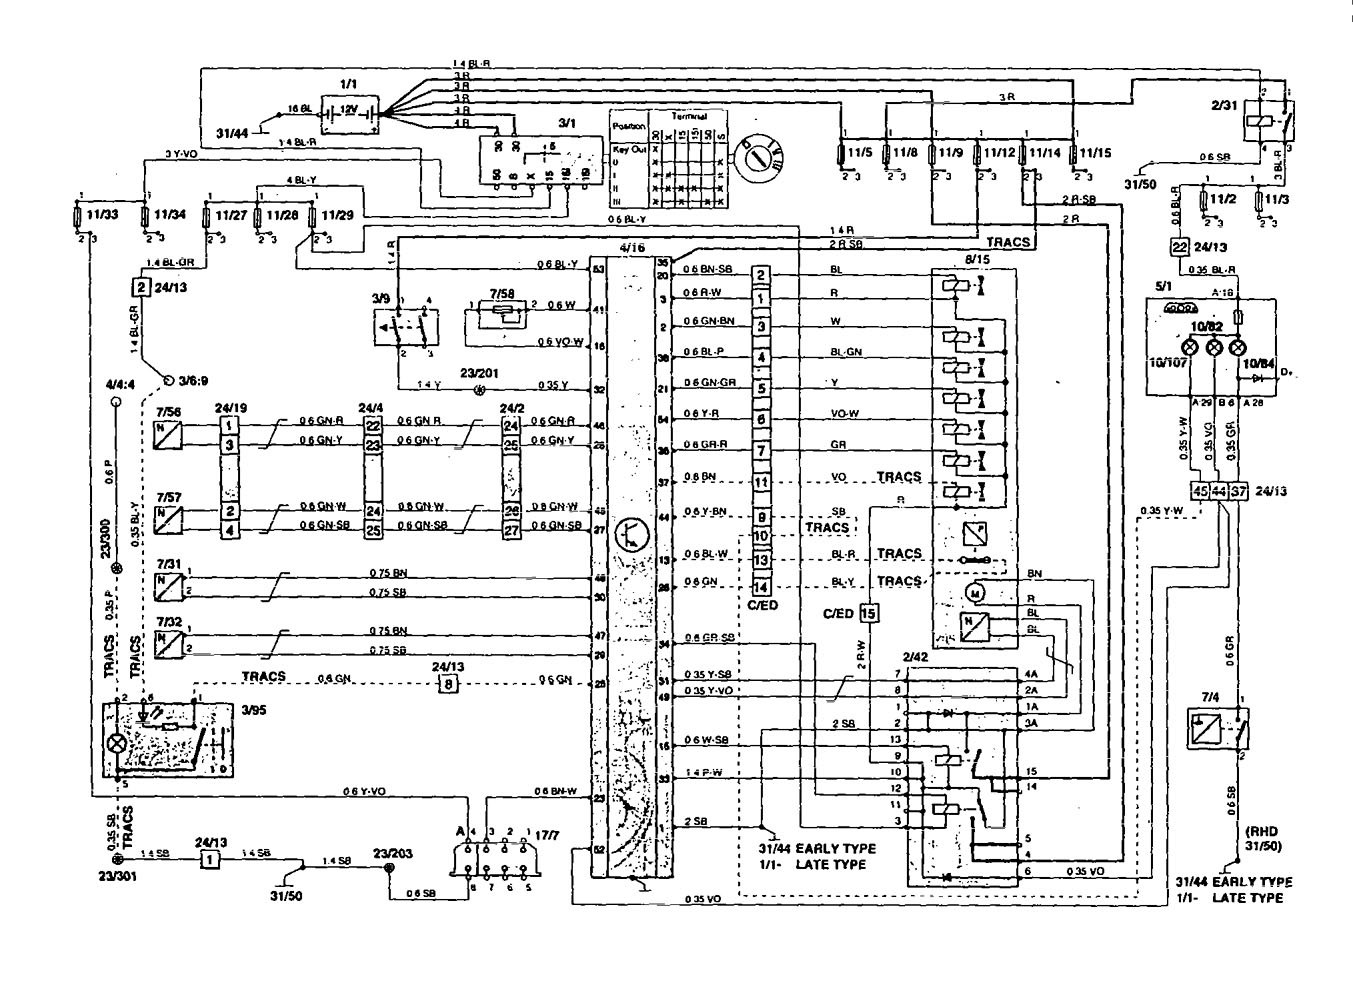 Volvo Wiring Diagram Traction Controls on Volvo 850 Radio Wiring Harness Diagram